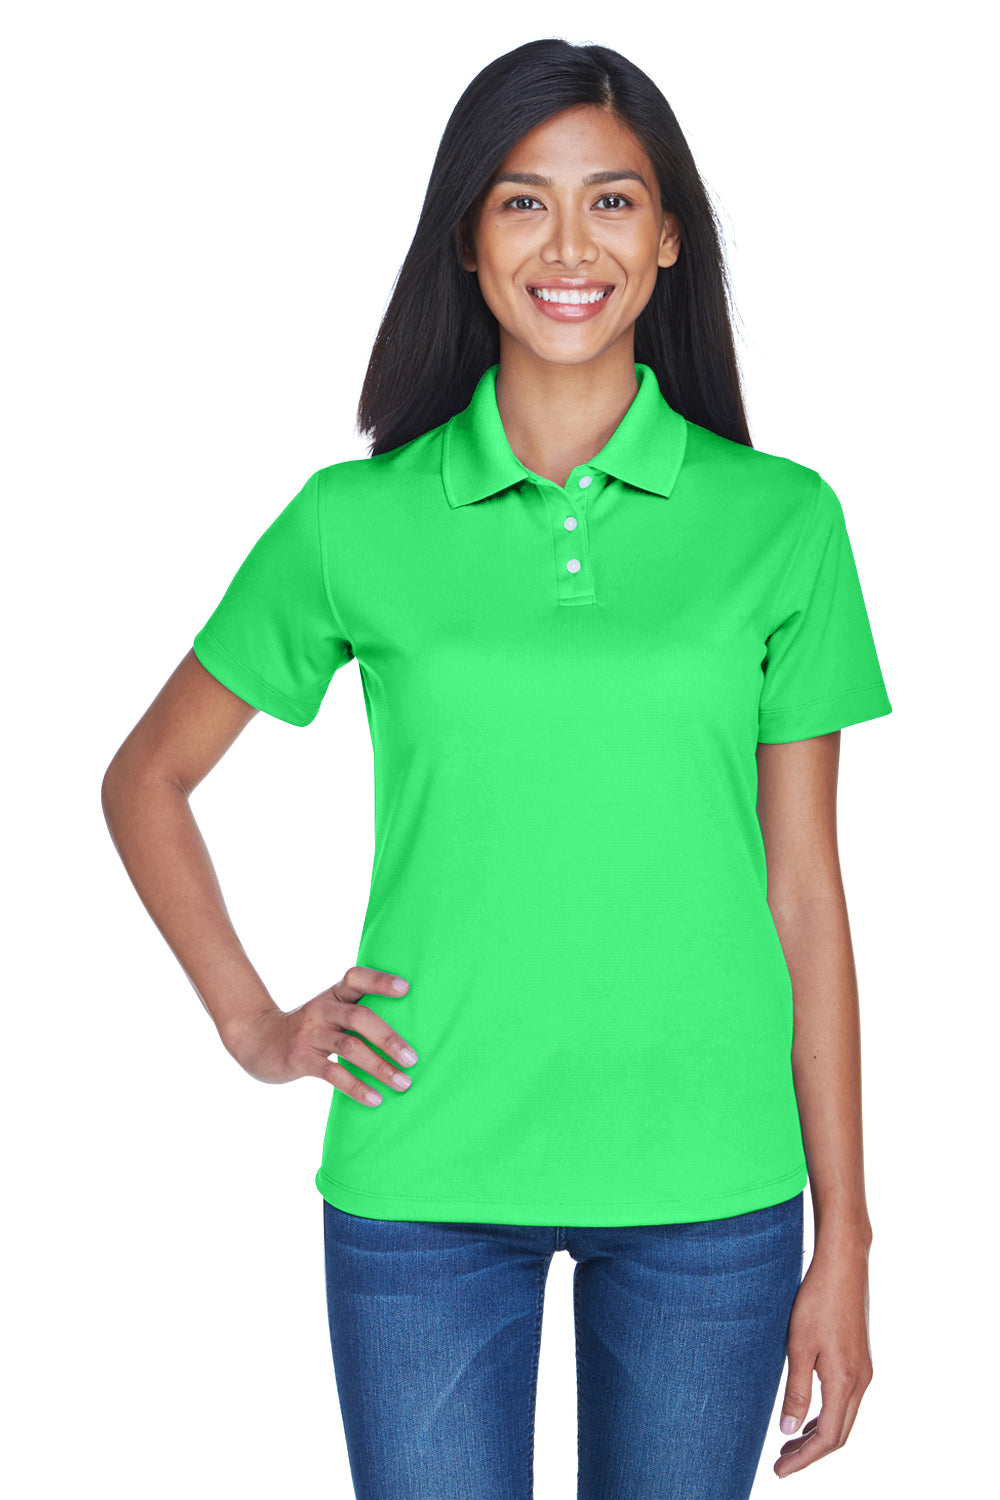 UltraClub 8445L Womens Cool & Dry Performance Moisture Wicking Short Sleeve Polo Shirt Cool Green Front